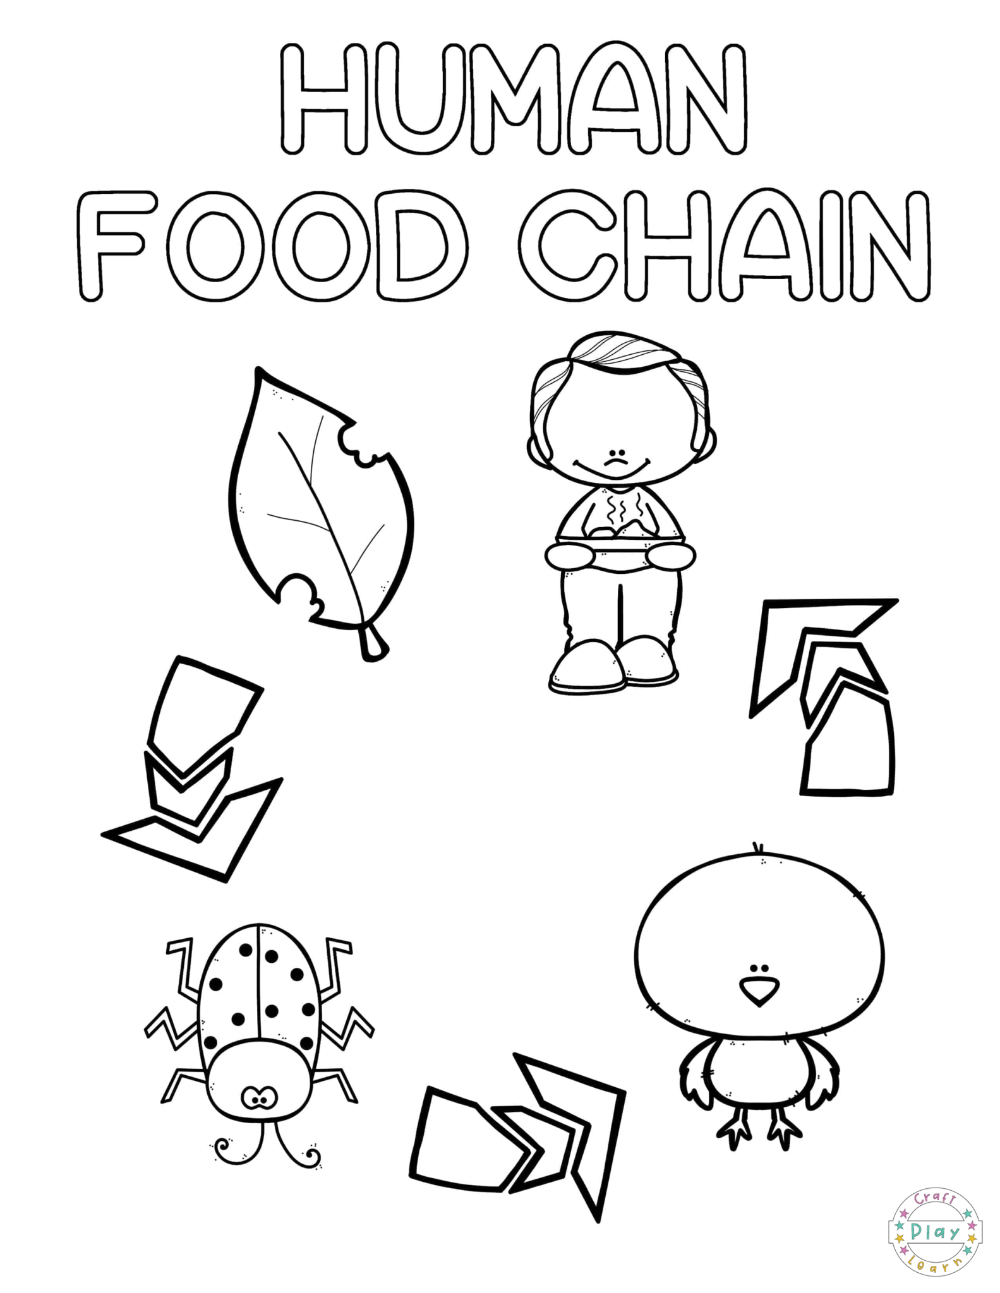 Preschool Coloring Pages Based On The Theme The Human Food Chain If You Re L Preschool Coloring Pages Food Chain Food Chain Worksheet [ 1293 x 1000 Pixel ]